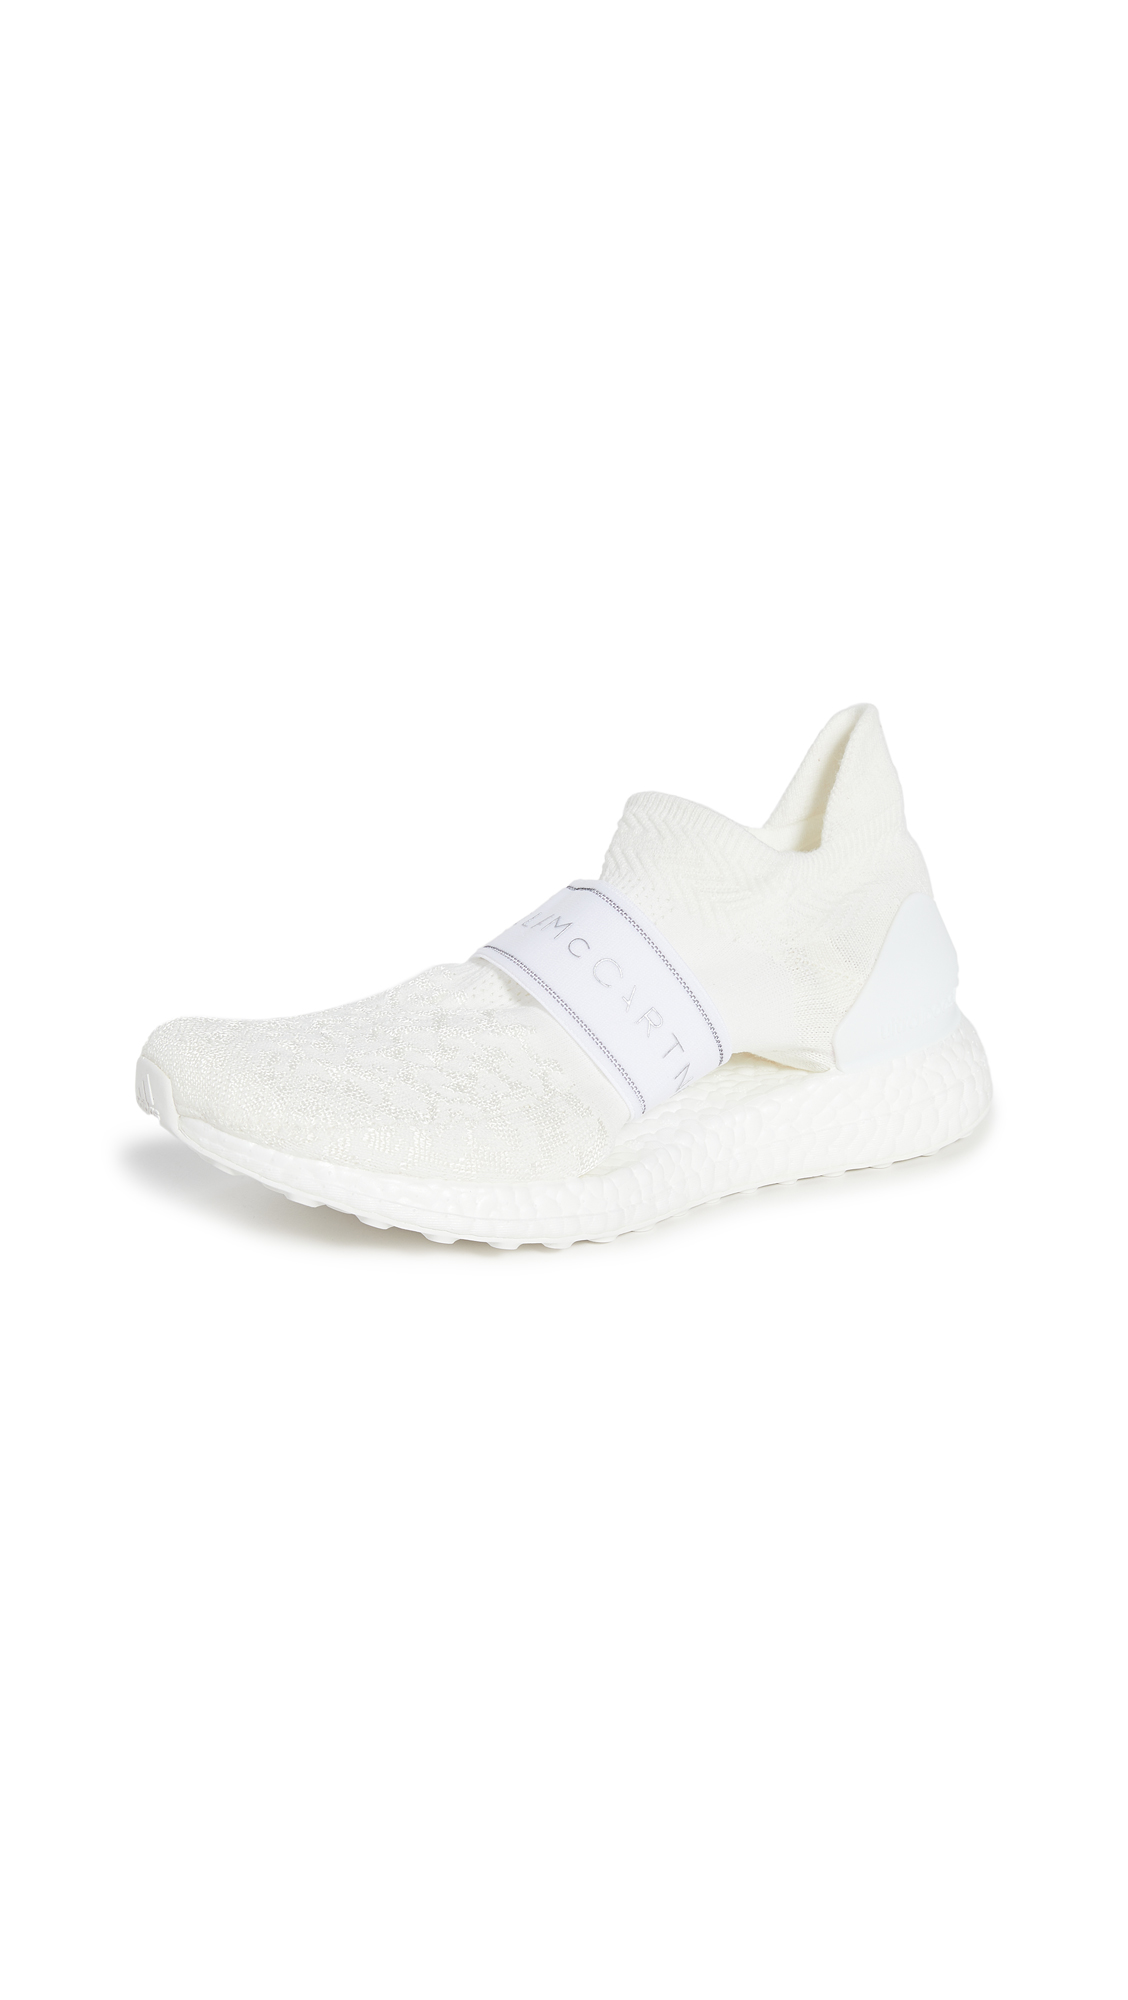 adidas by Stella McCartney Ultraboost X 3. D.S. Sneakers - 30% Off Sale